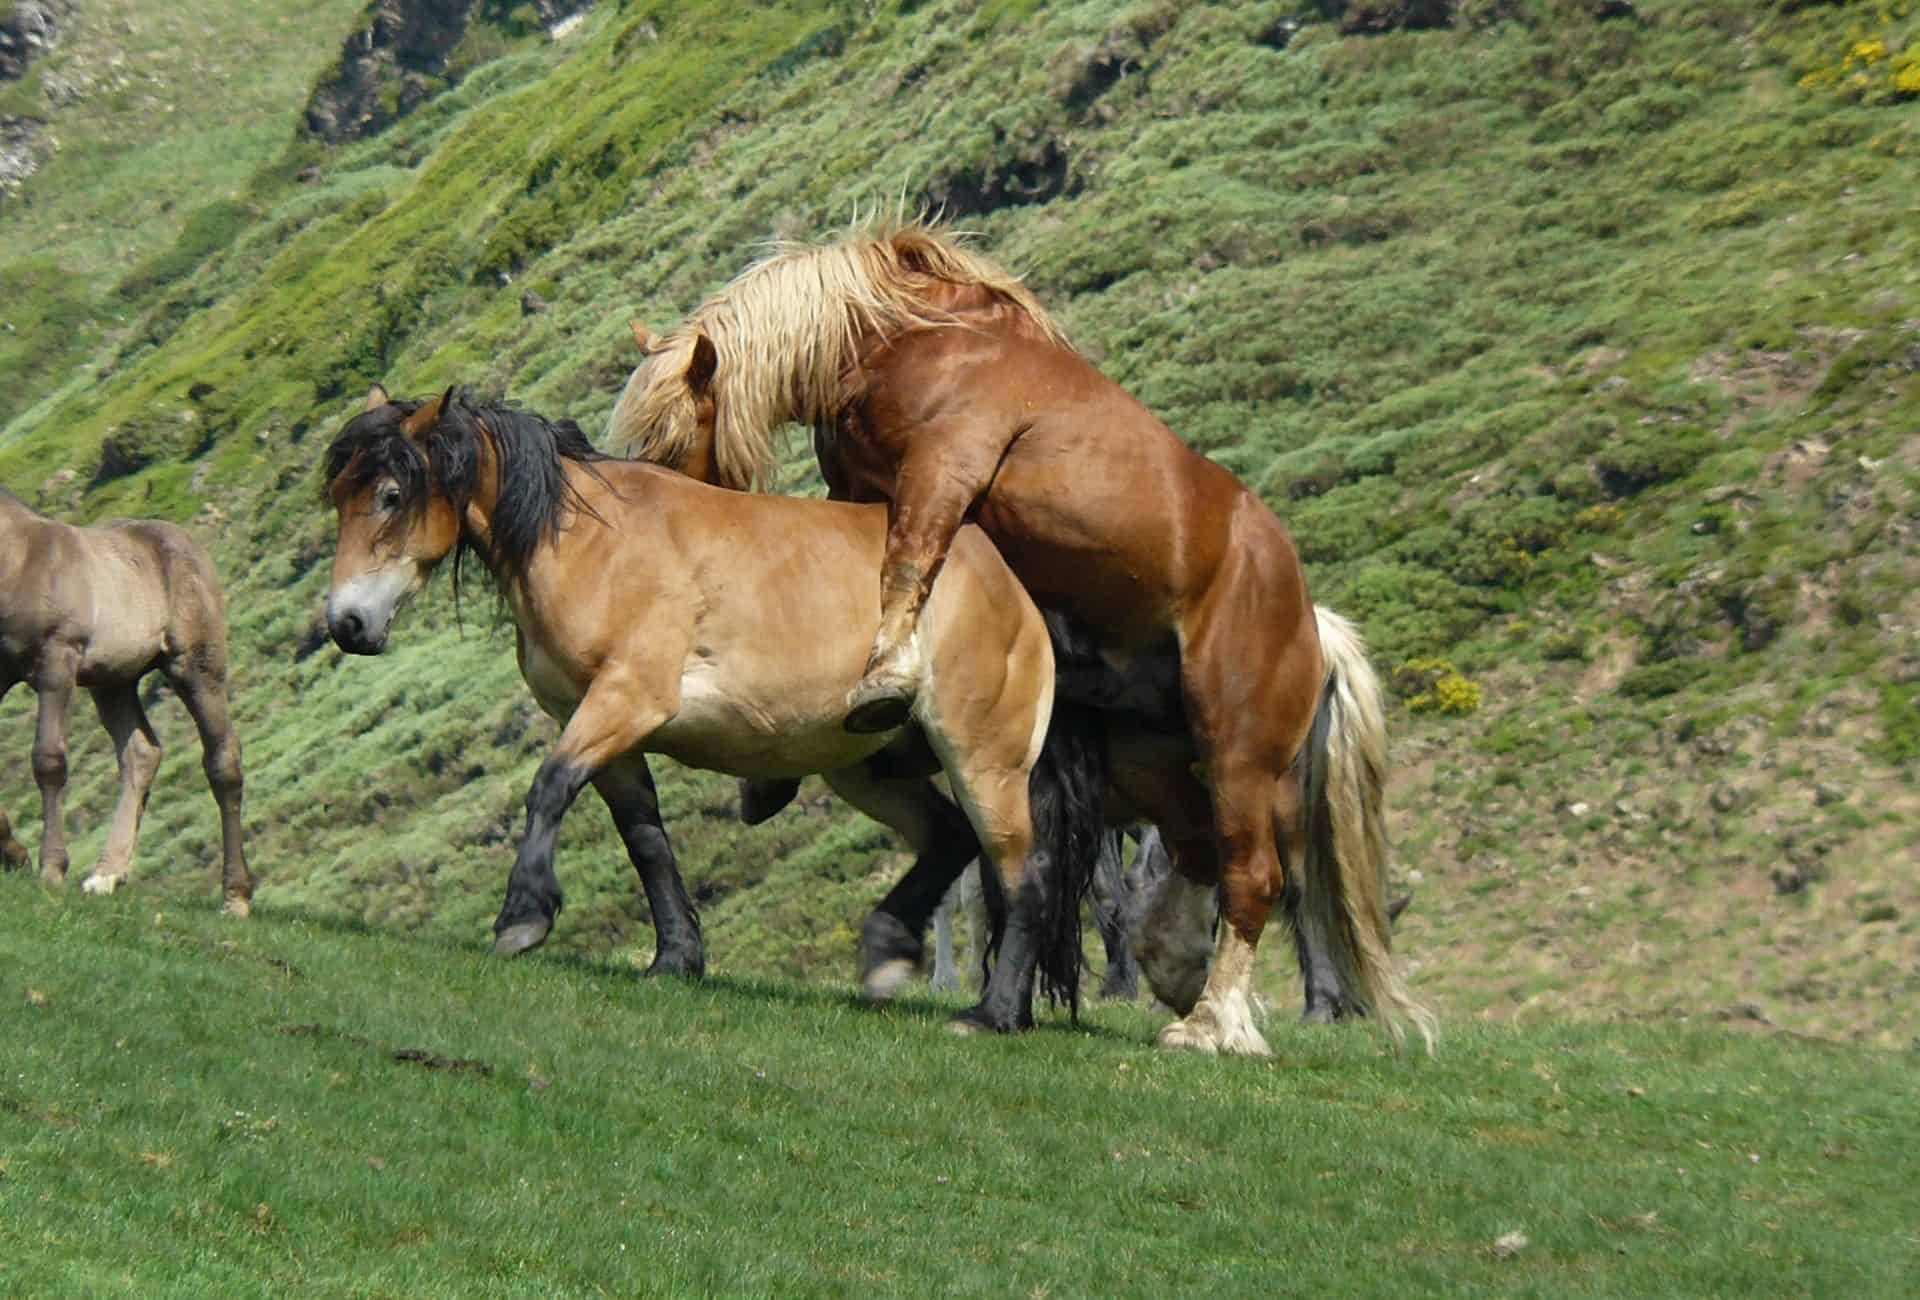 One horse on a grassy field is mounting another horse.